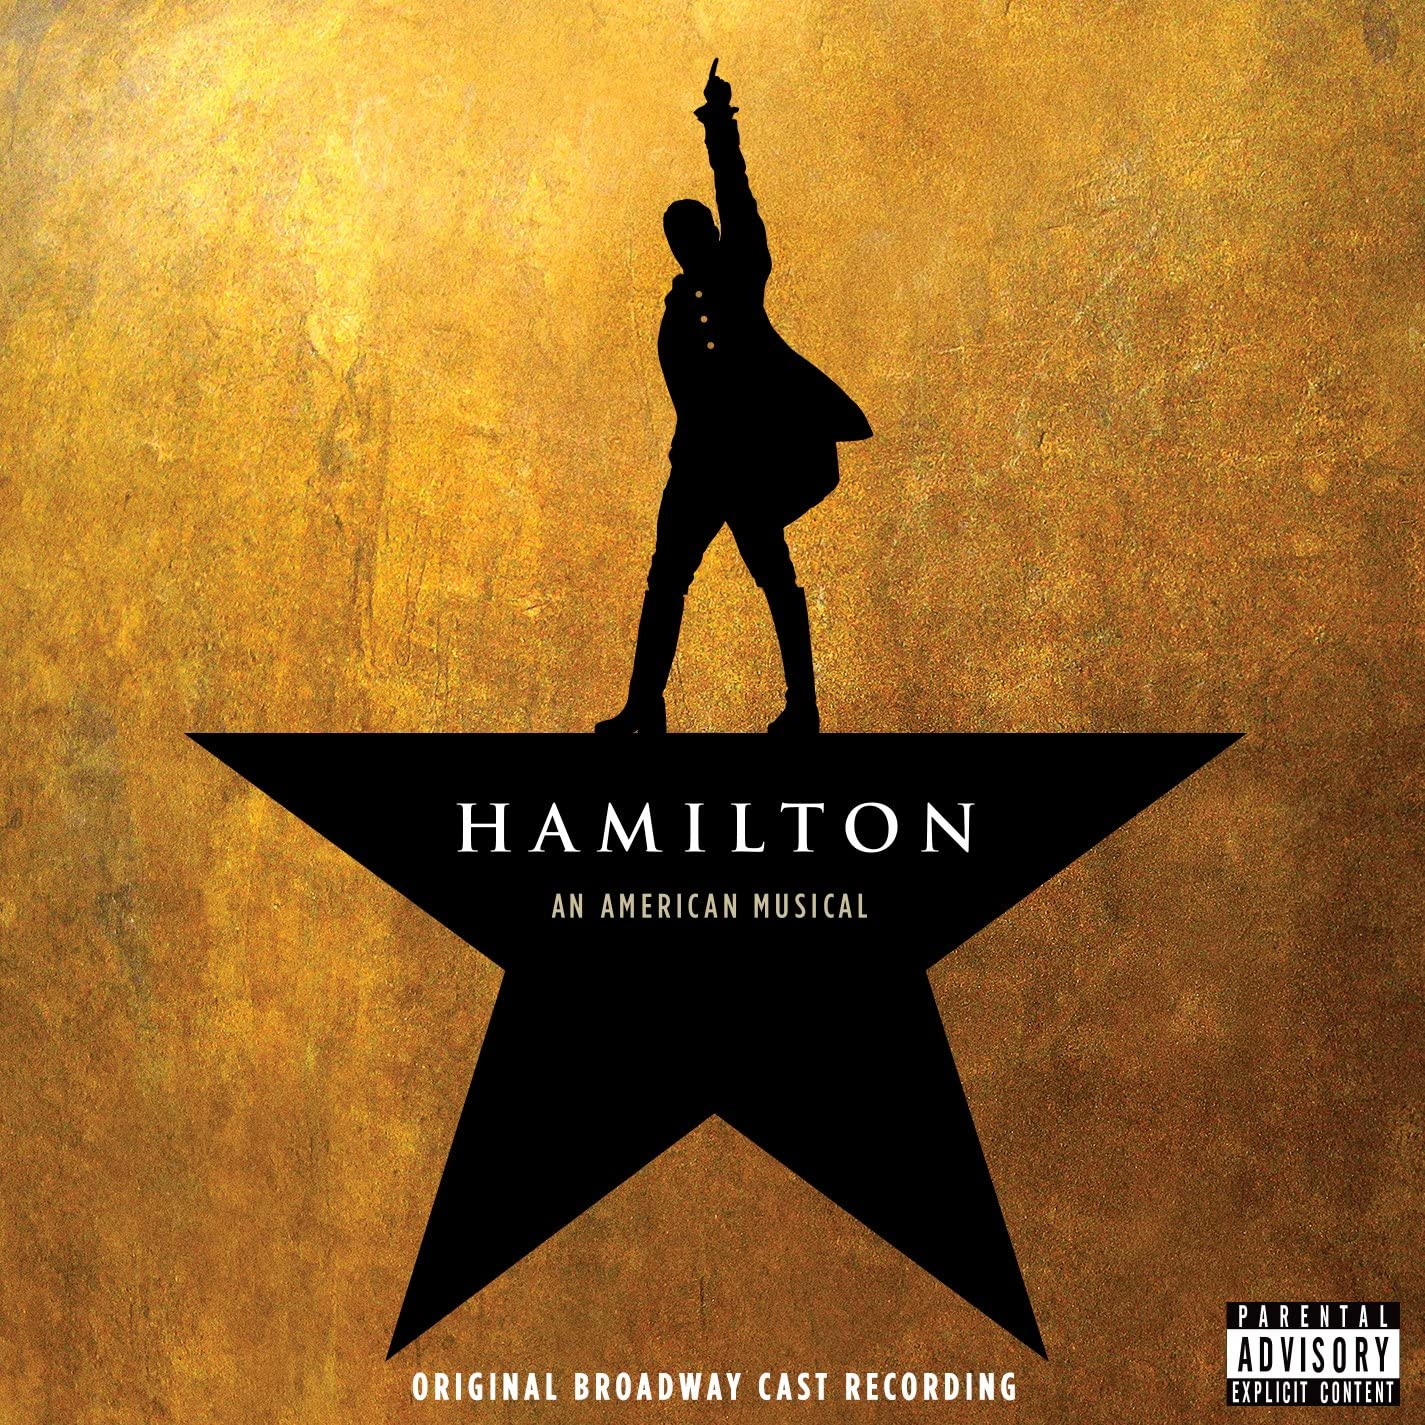 Hamilton - O.B.C.R.: Various Artists: Amazon.it: Musica